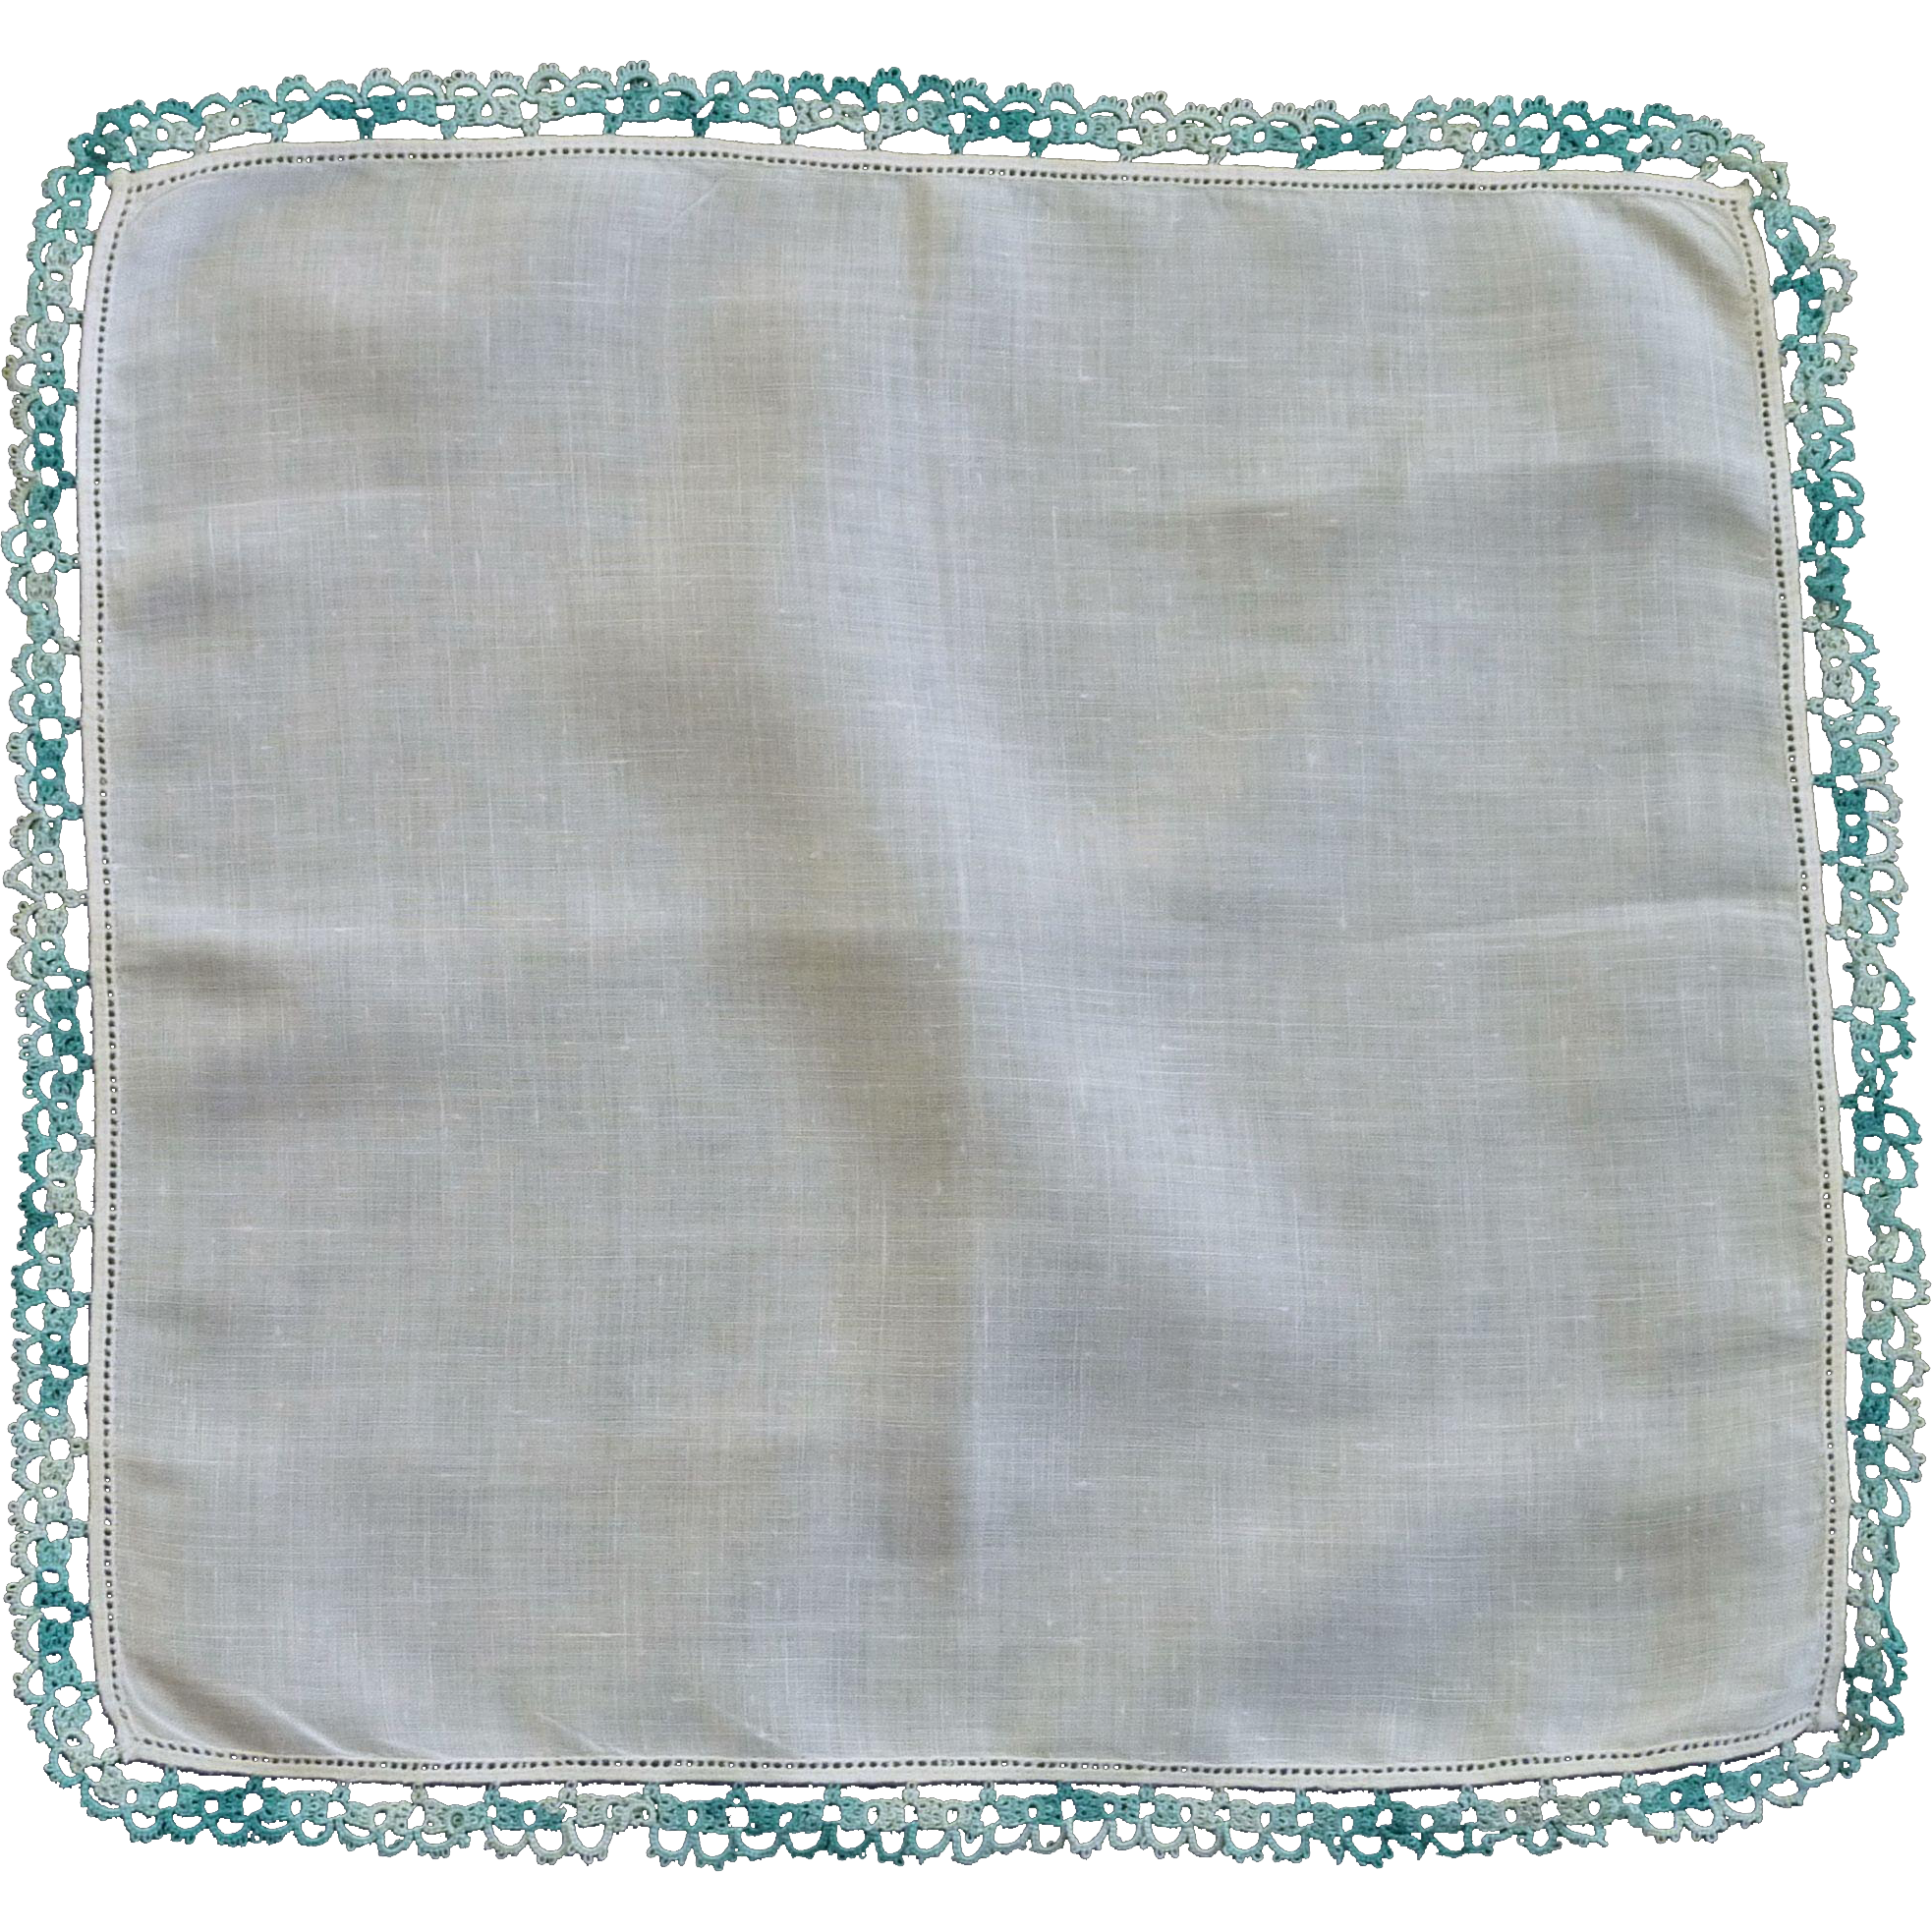 Aqua Teal Tatted Border on White Linen Handkerchief